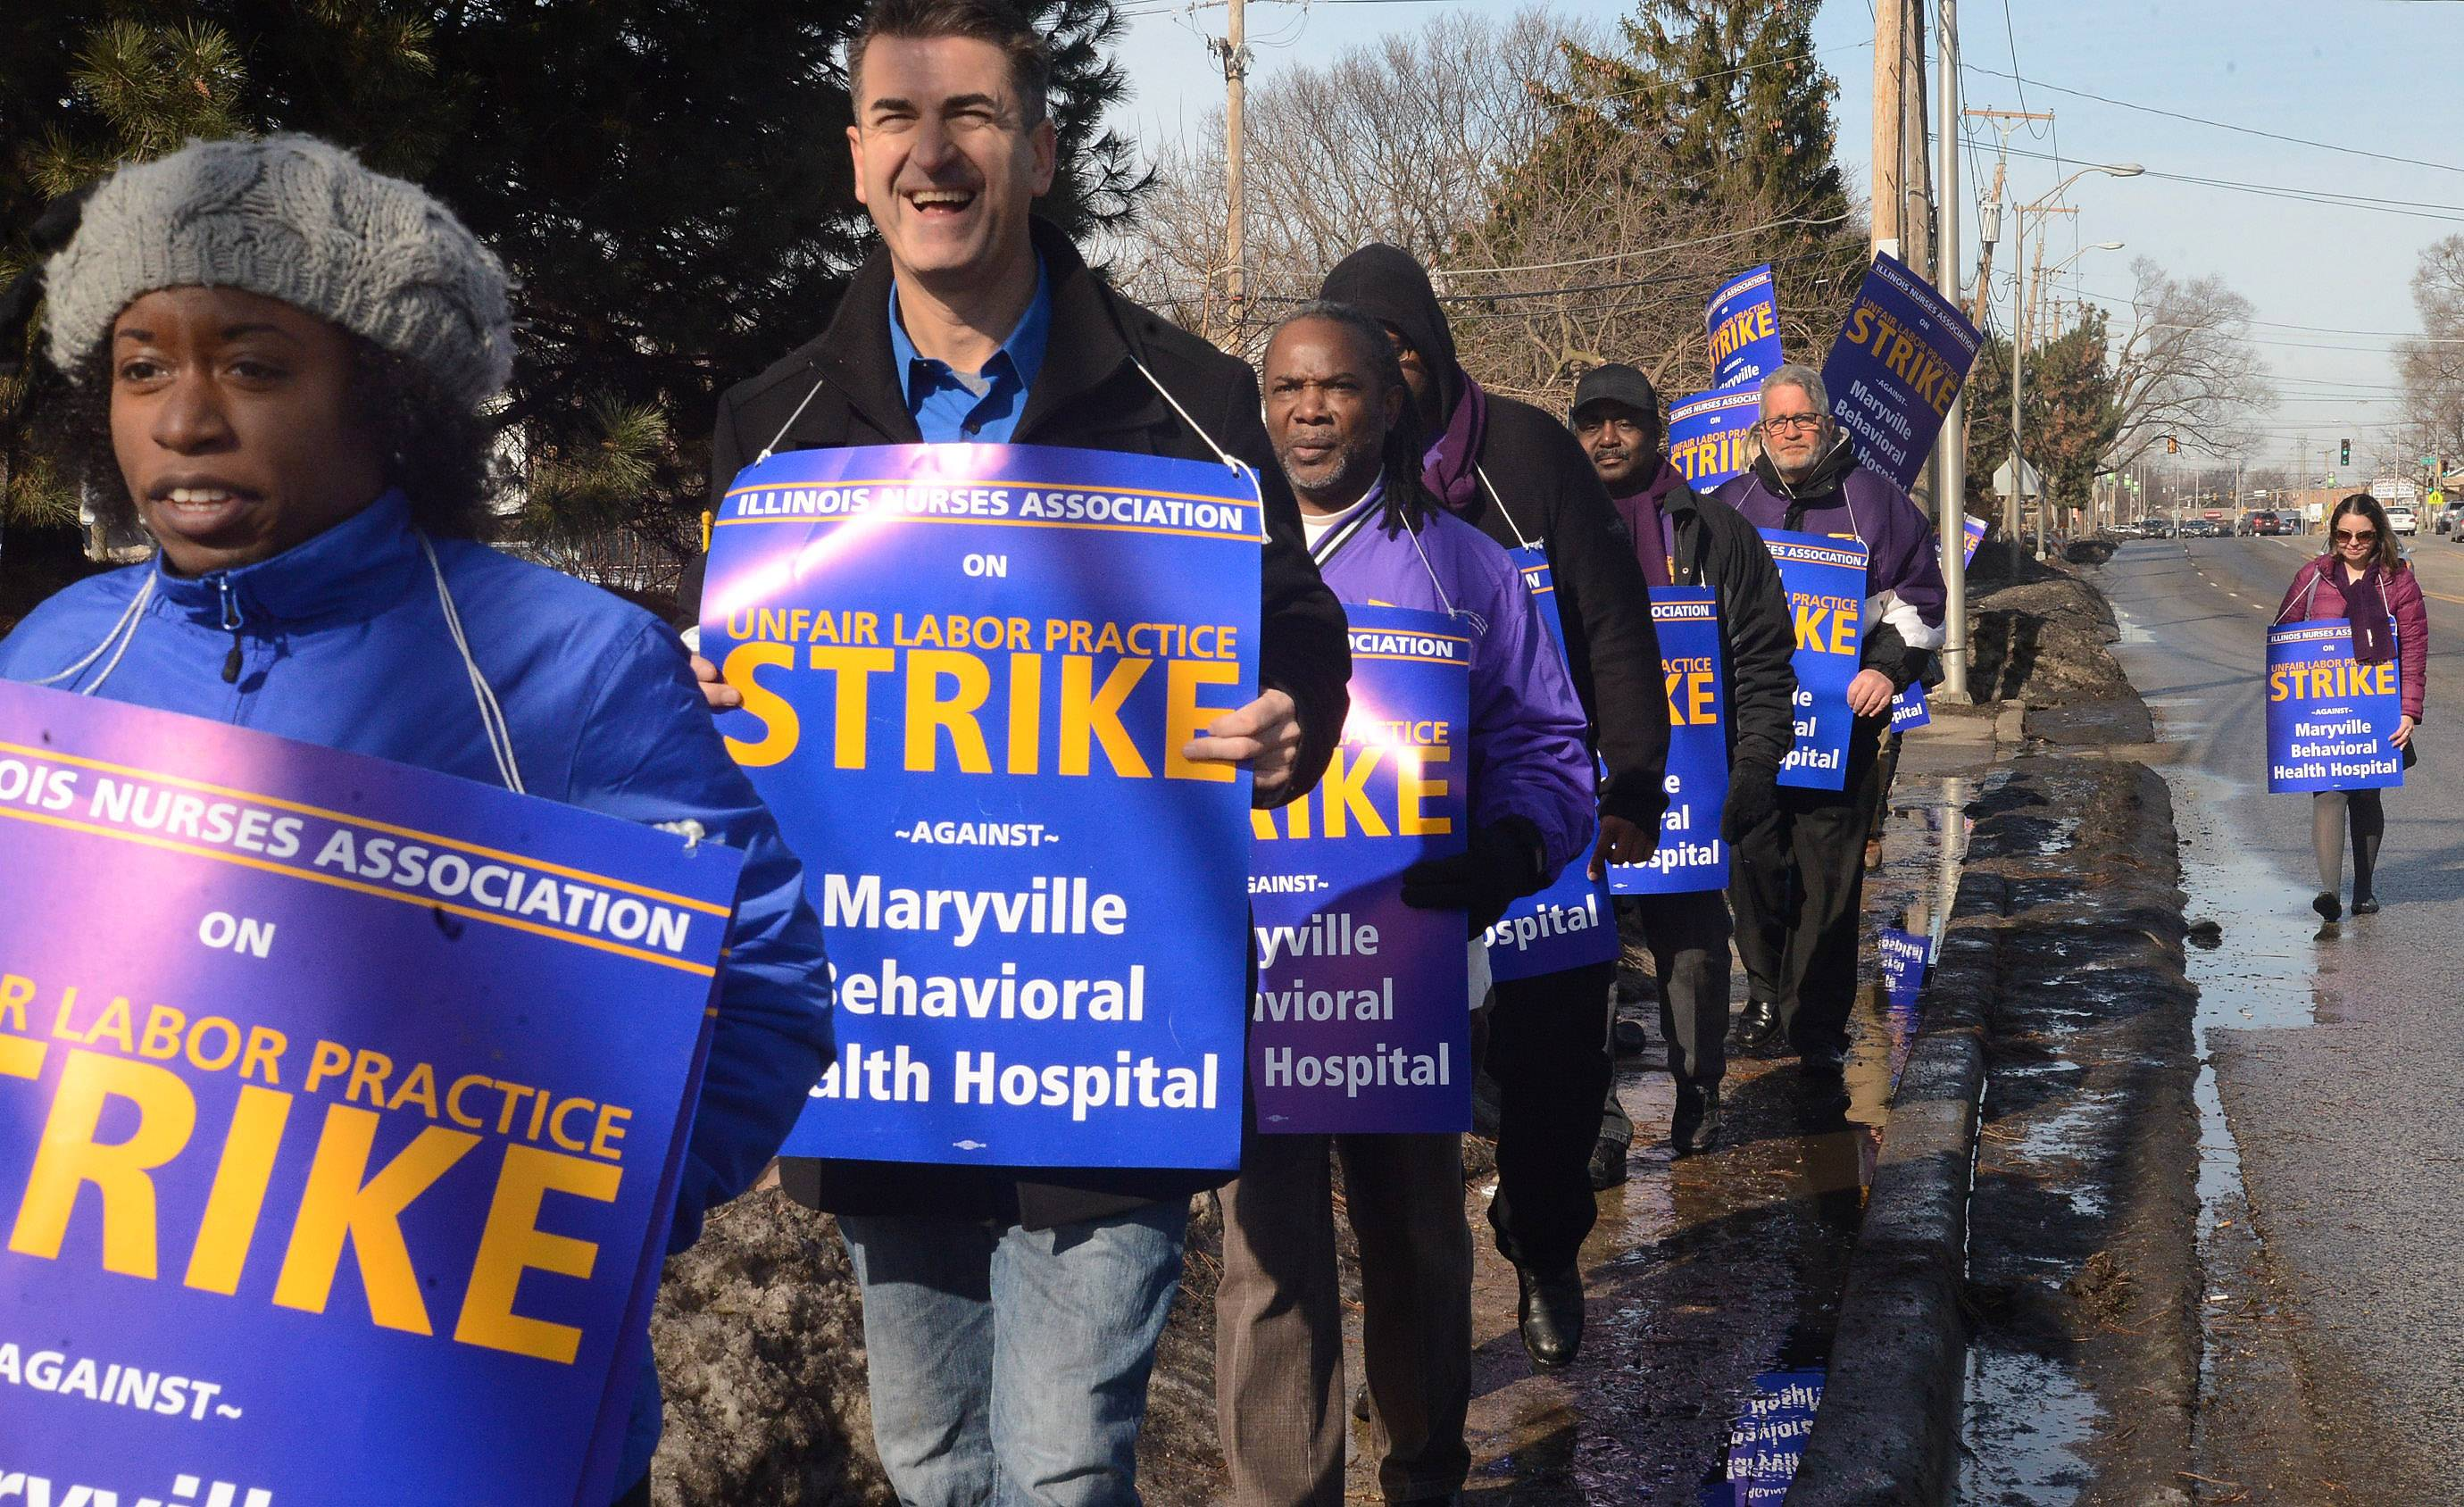 More than 20 nurses began a five-day strike Monday against Maryville Behavioral Health Hospital in Des Plaines, saying conditions and staffing levels at the facility make working there unsafe.